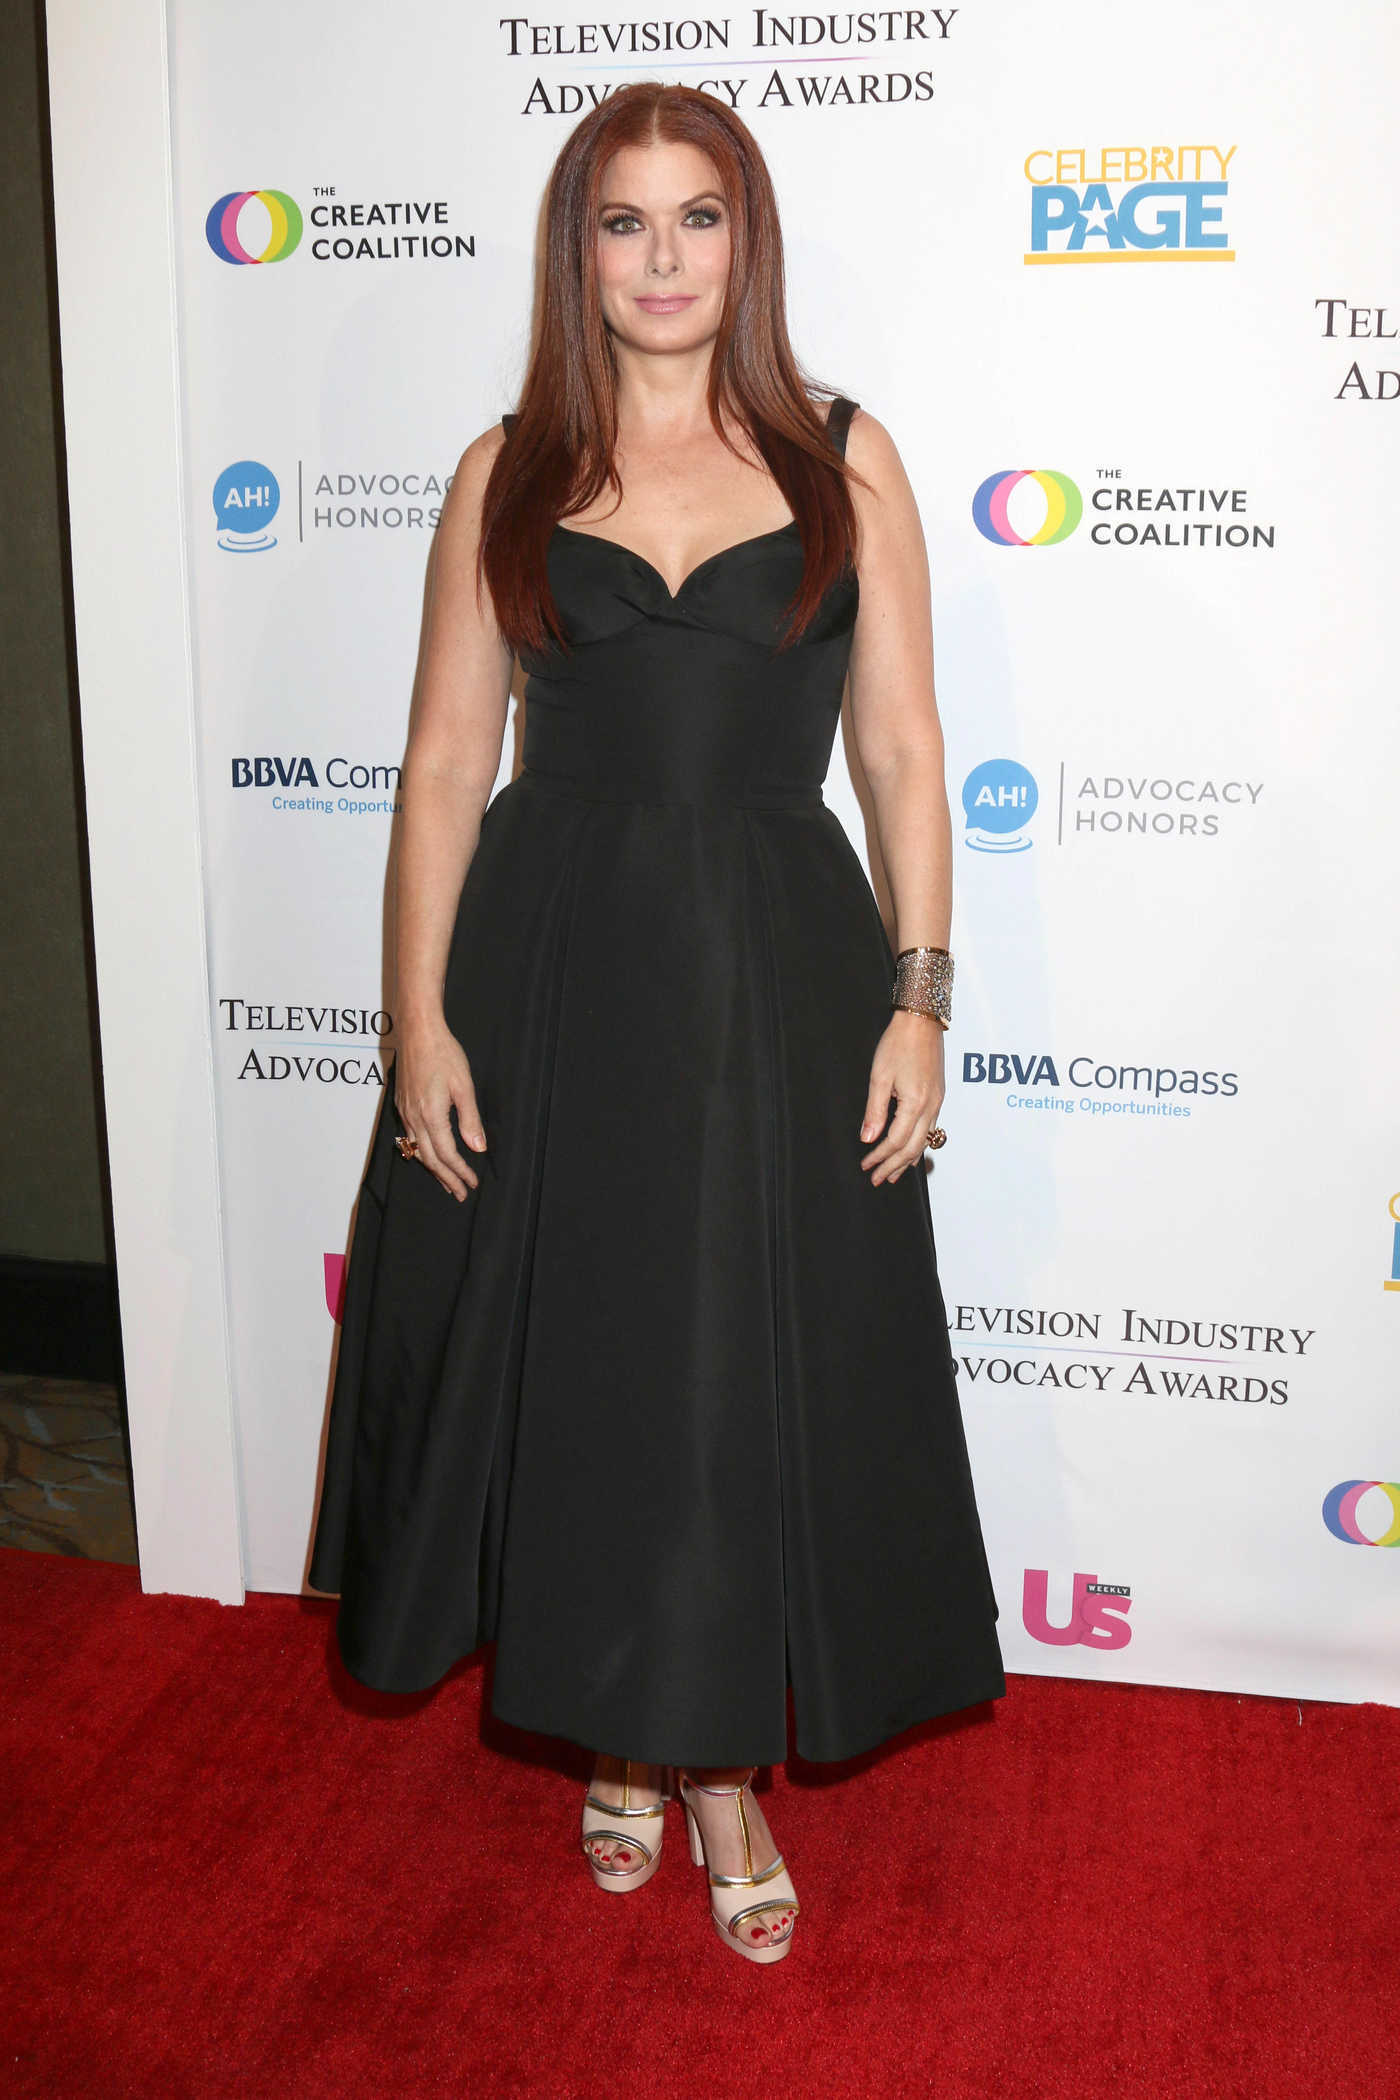 Debra Messing at 2018 Television Industry Advocacy Awards in LA 09/15/2018